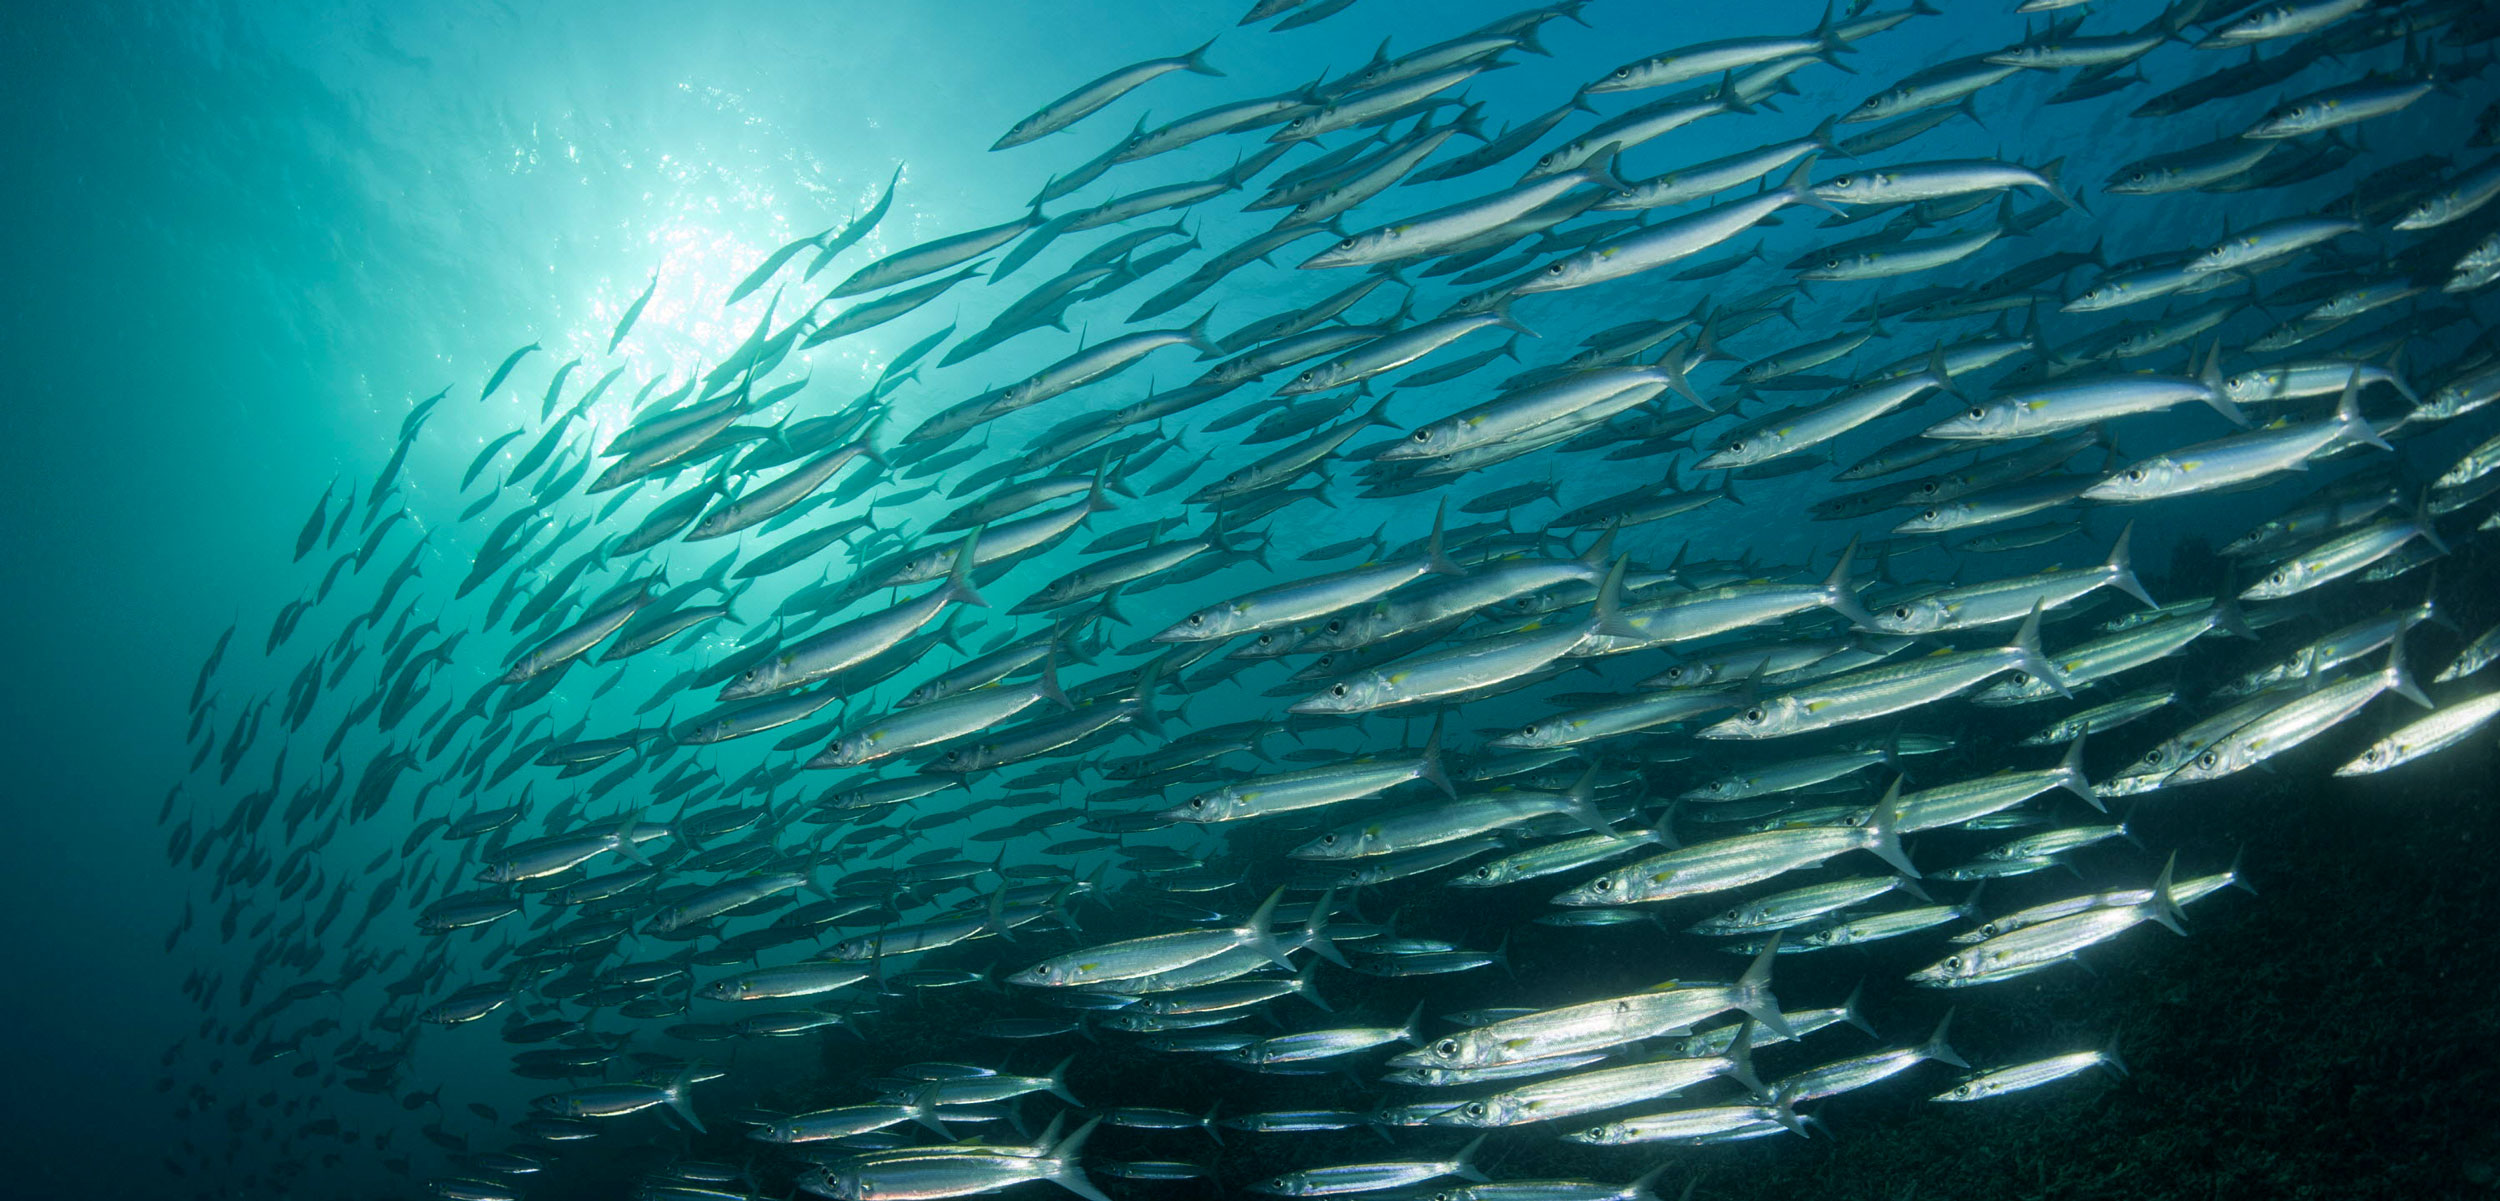 Shoal of schooling Bigeye barracuda